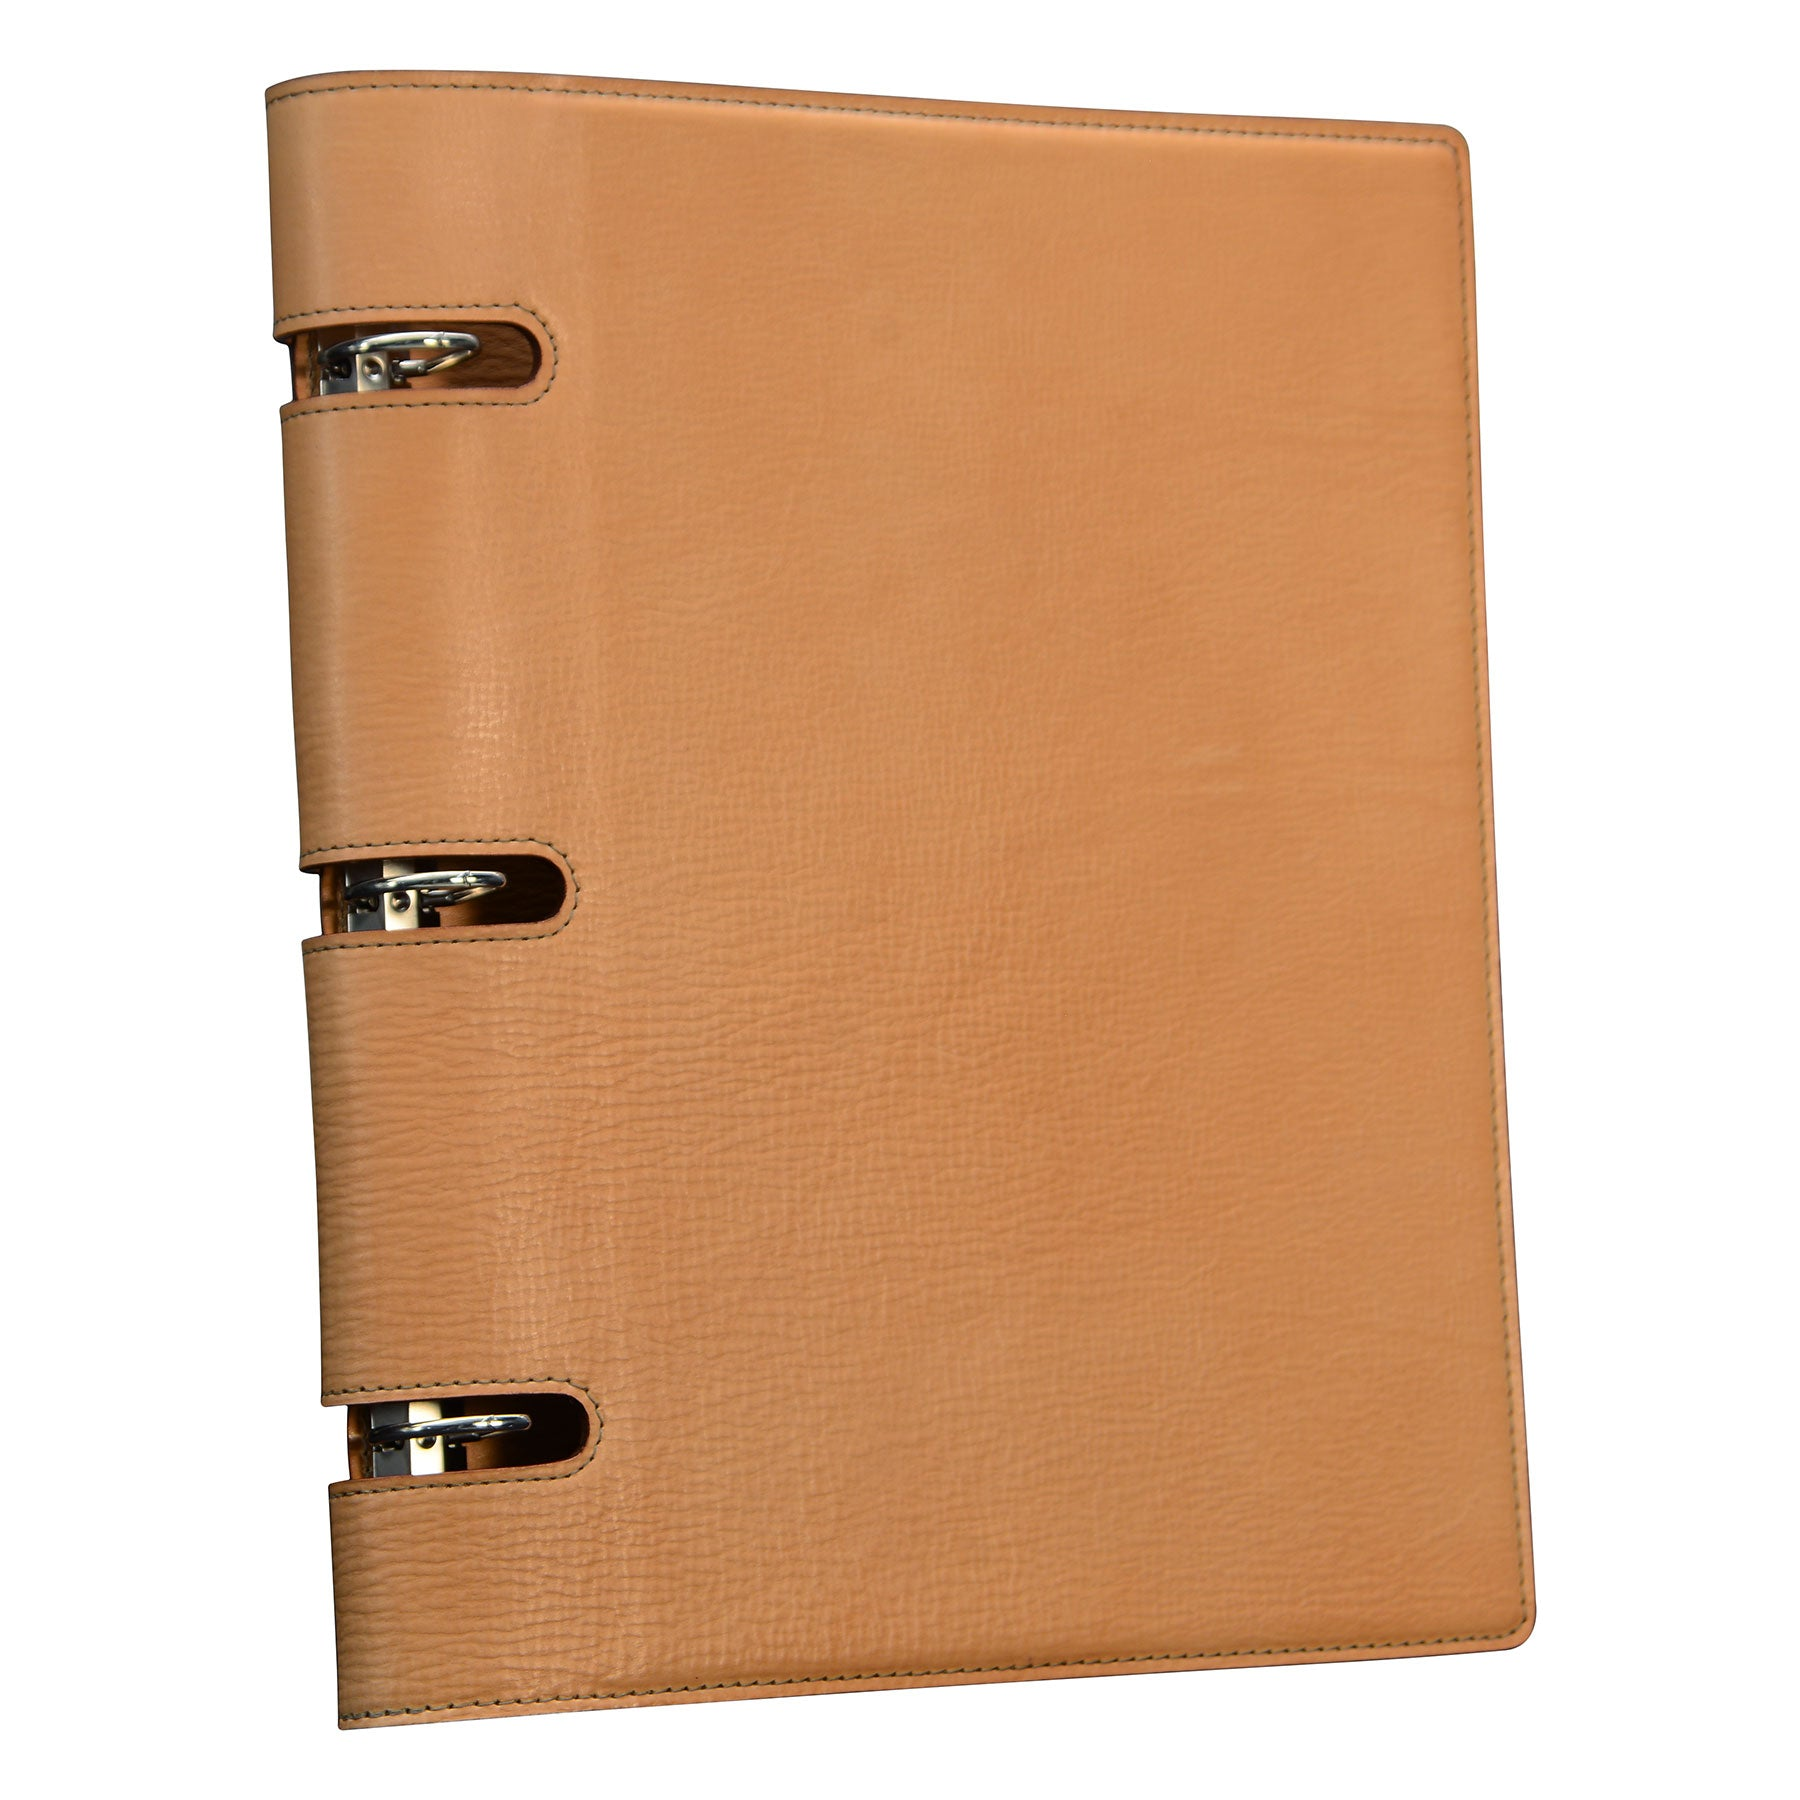 Three Ring Presentation Binder: Hand-Burnished Leather